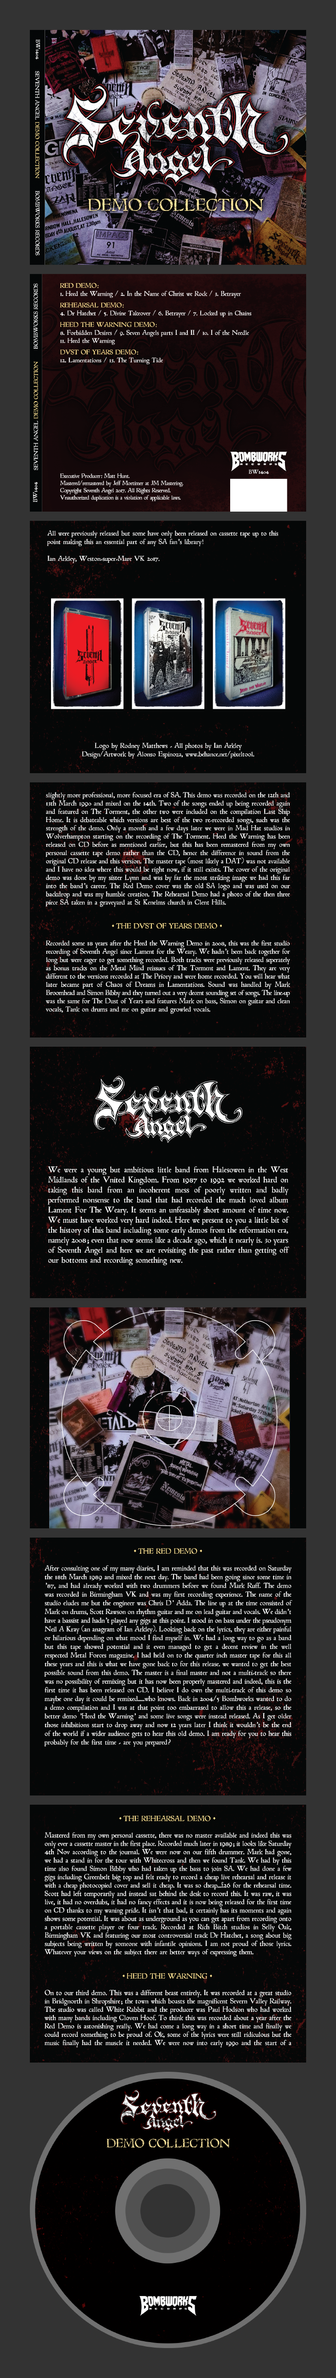 Seventh Angel - Demo Collection by AlonsoEspinoza